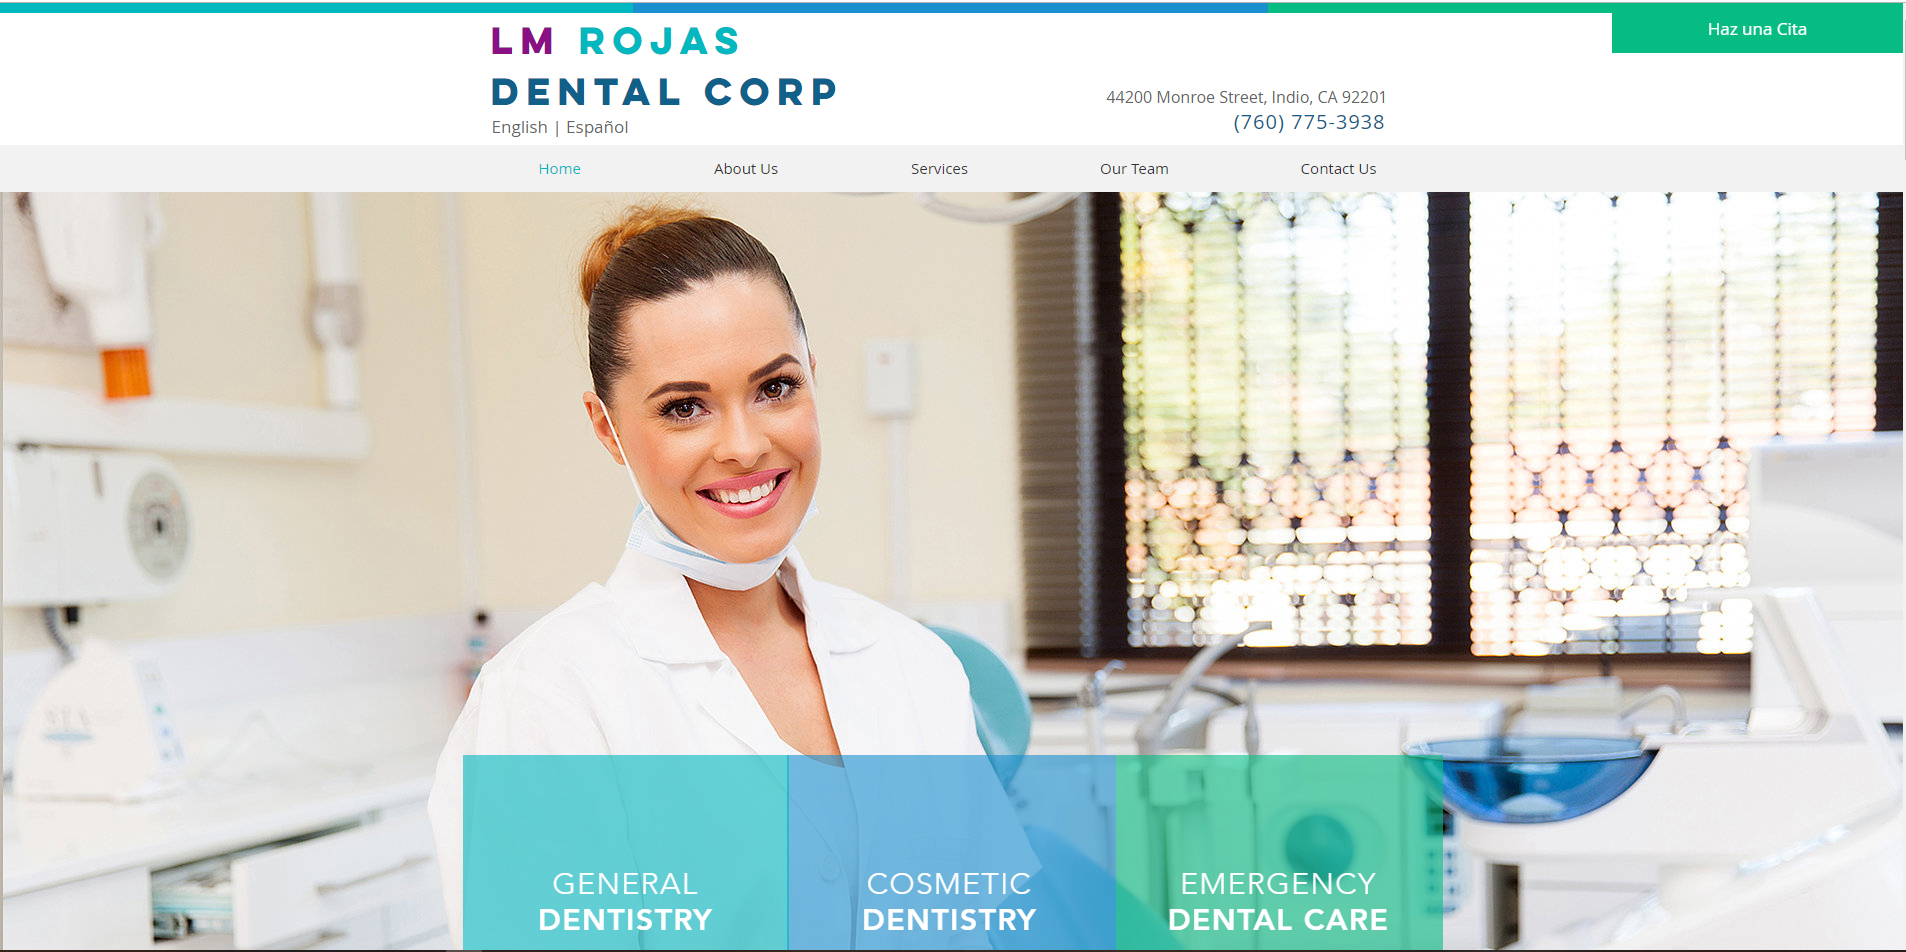 LM Rojas Dental Corpo